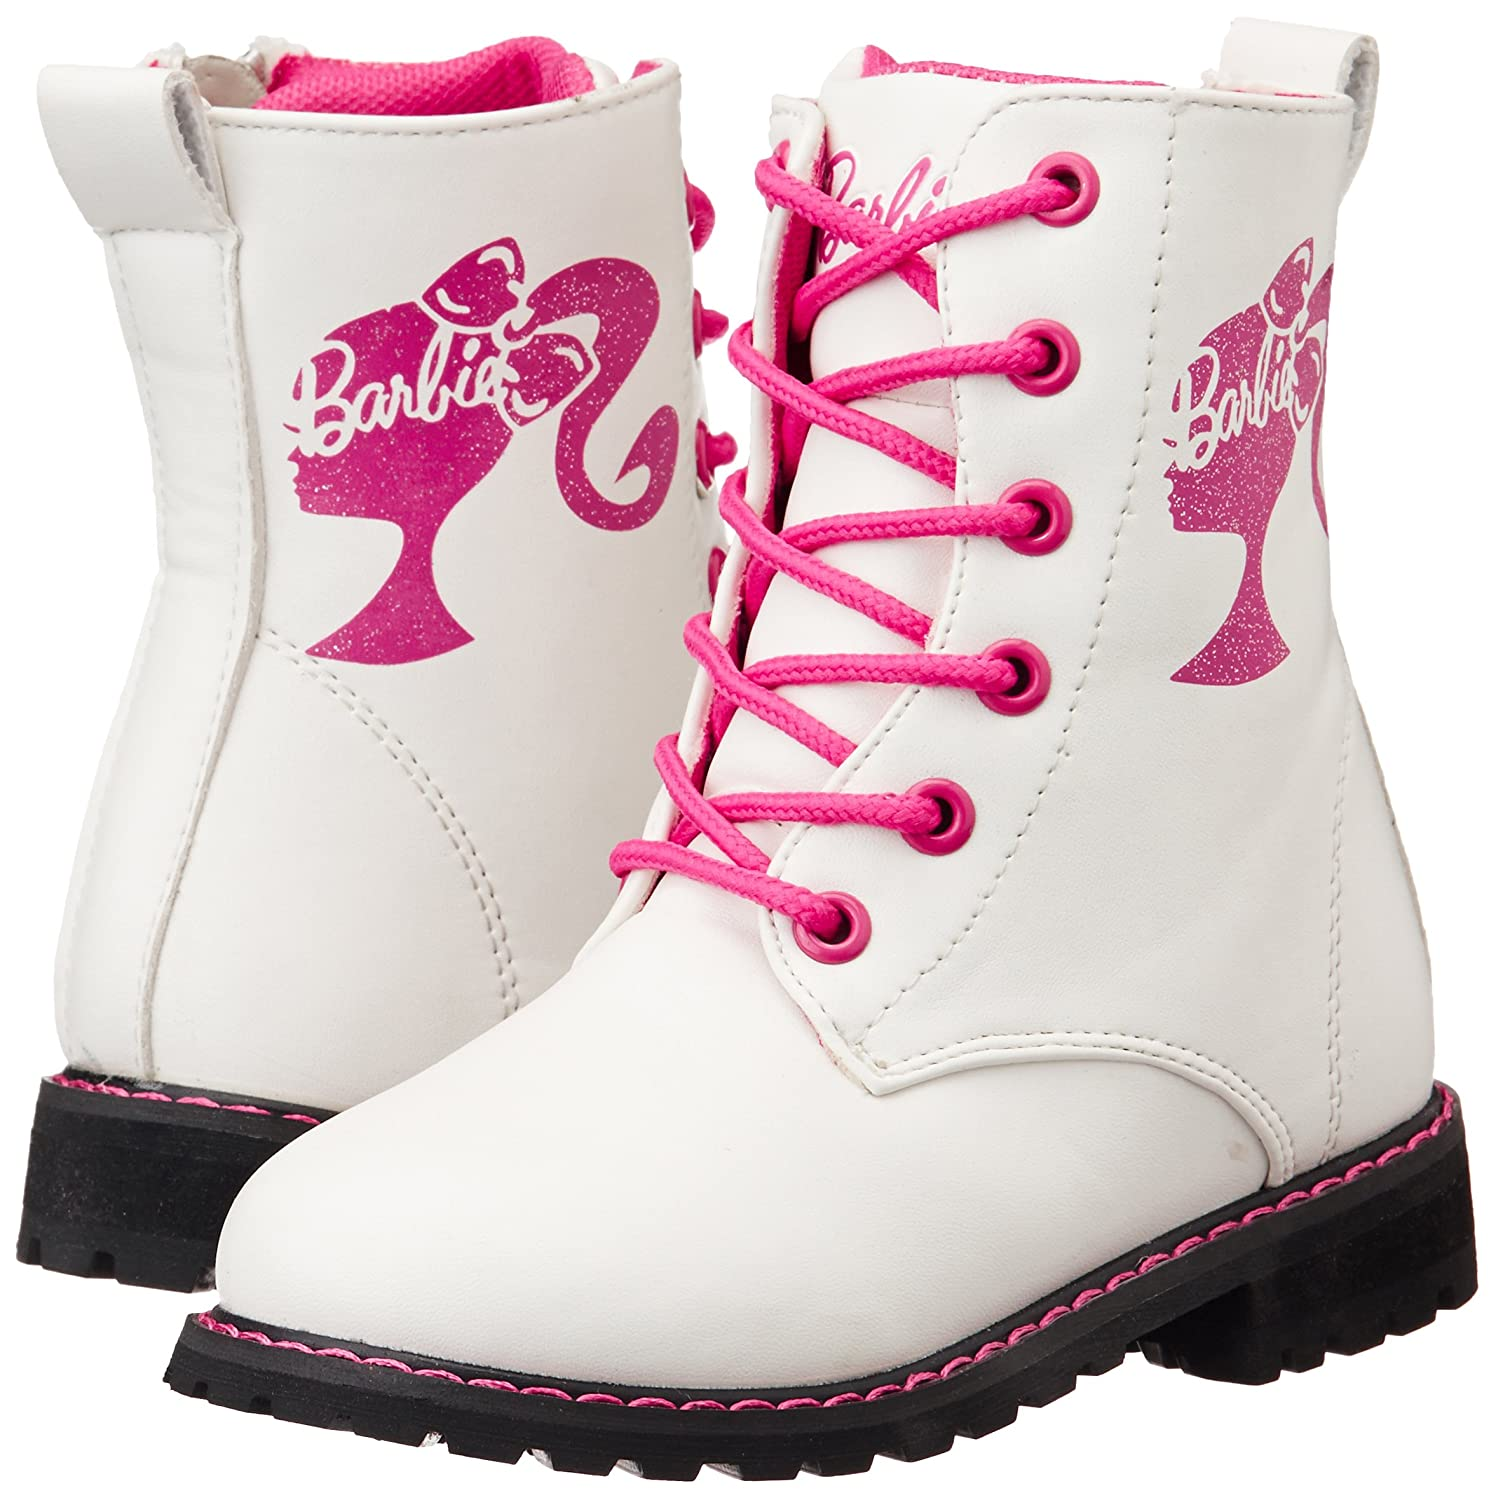 Onwijs Barbie Girl's White Boots - 12C UK: Buy Online at Low Prices in LV-88